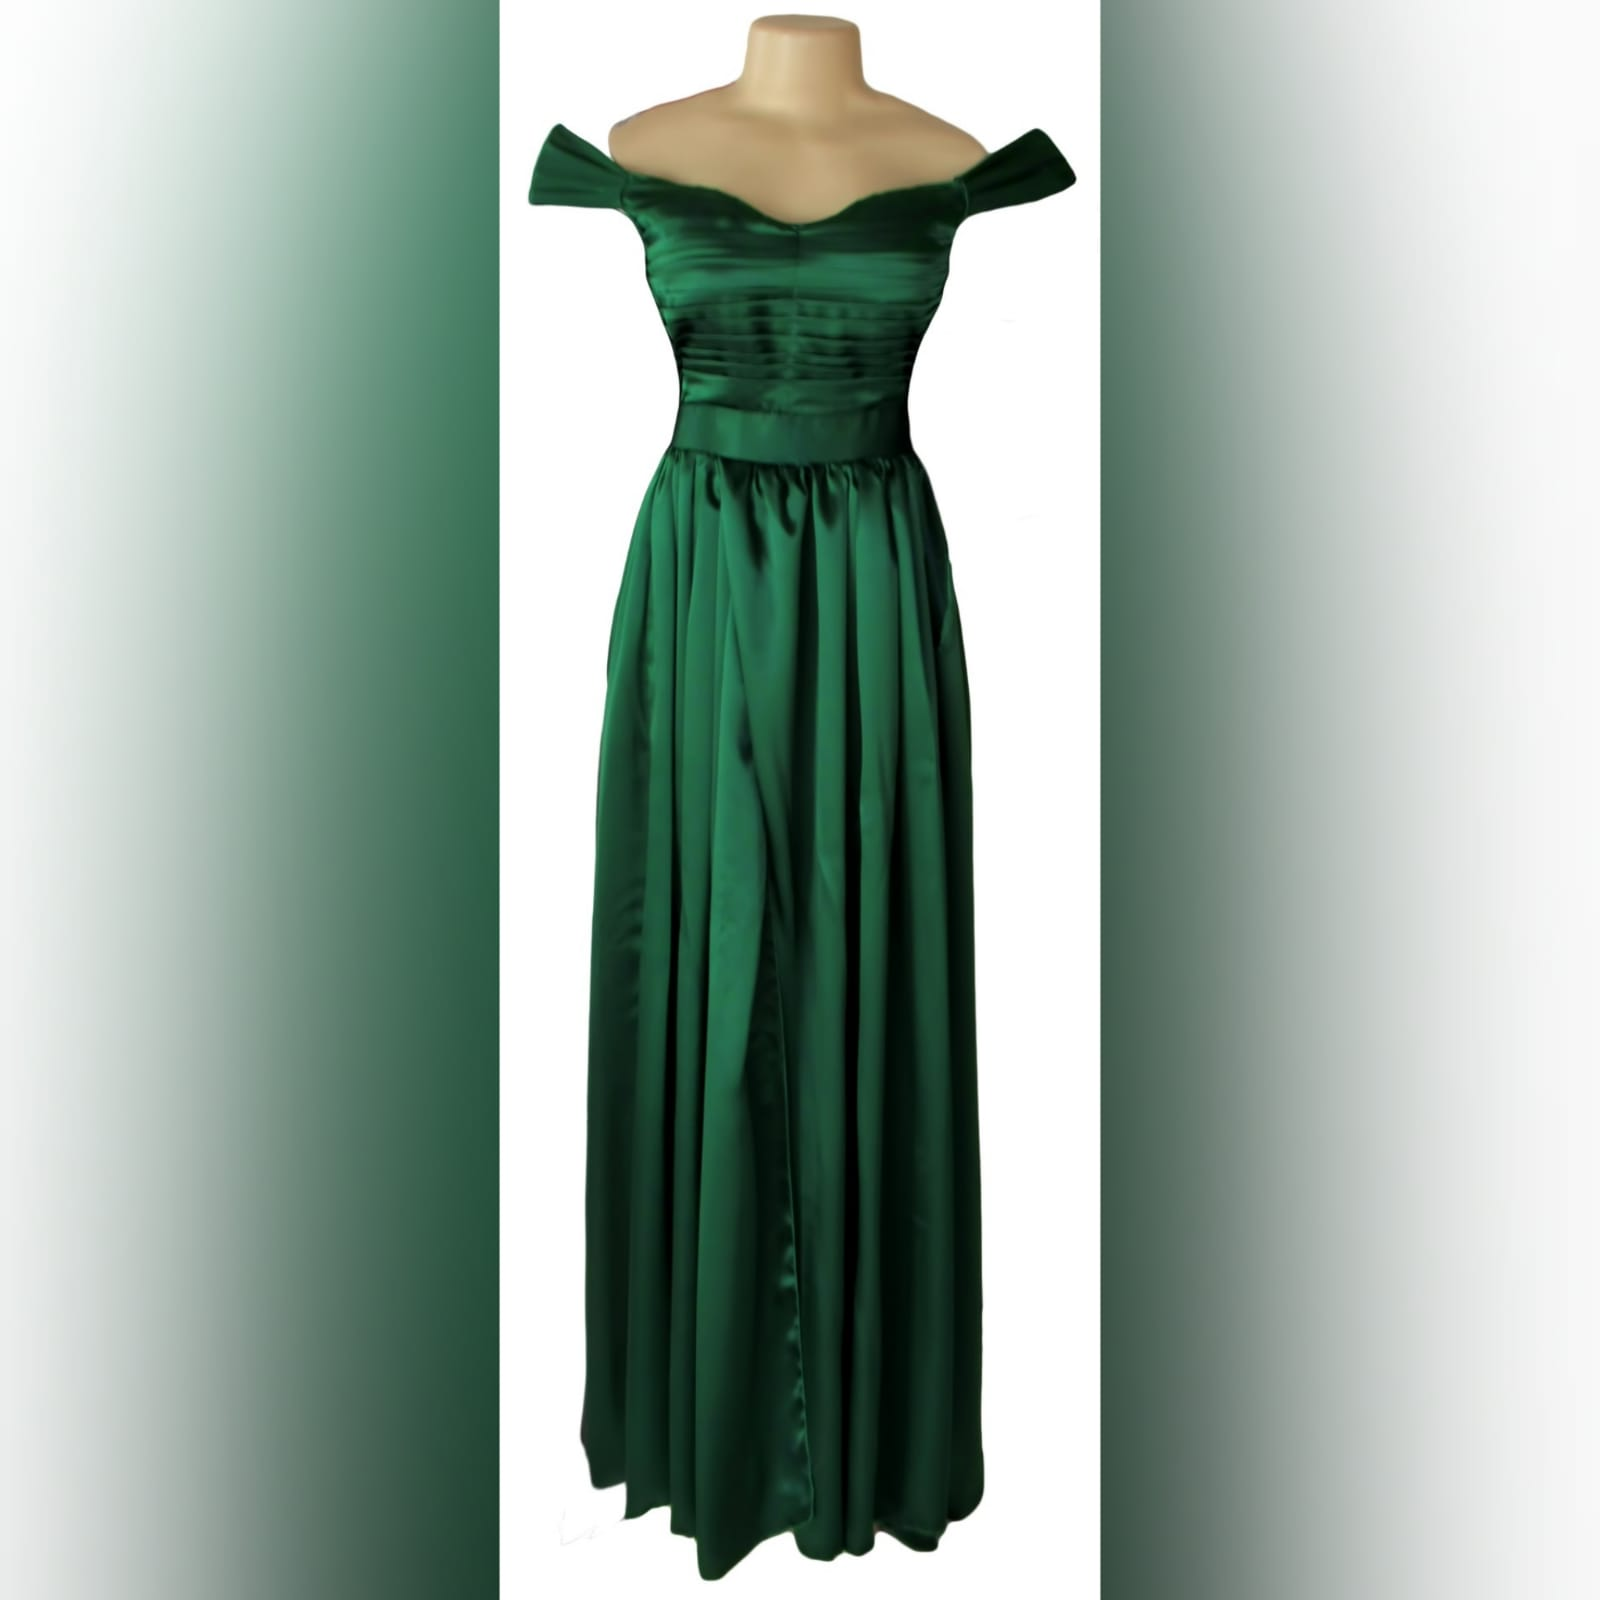 Emerald green satin flowy formal dress 6 emerald green satin off shoulder flowy formal dress, with a pleated bodice off shoulder short sleeves, naked back detailed with straps. A crossed slit and a small train.